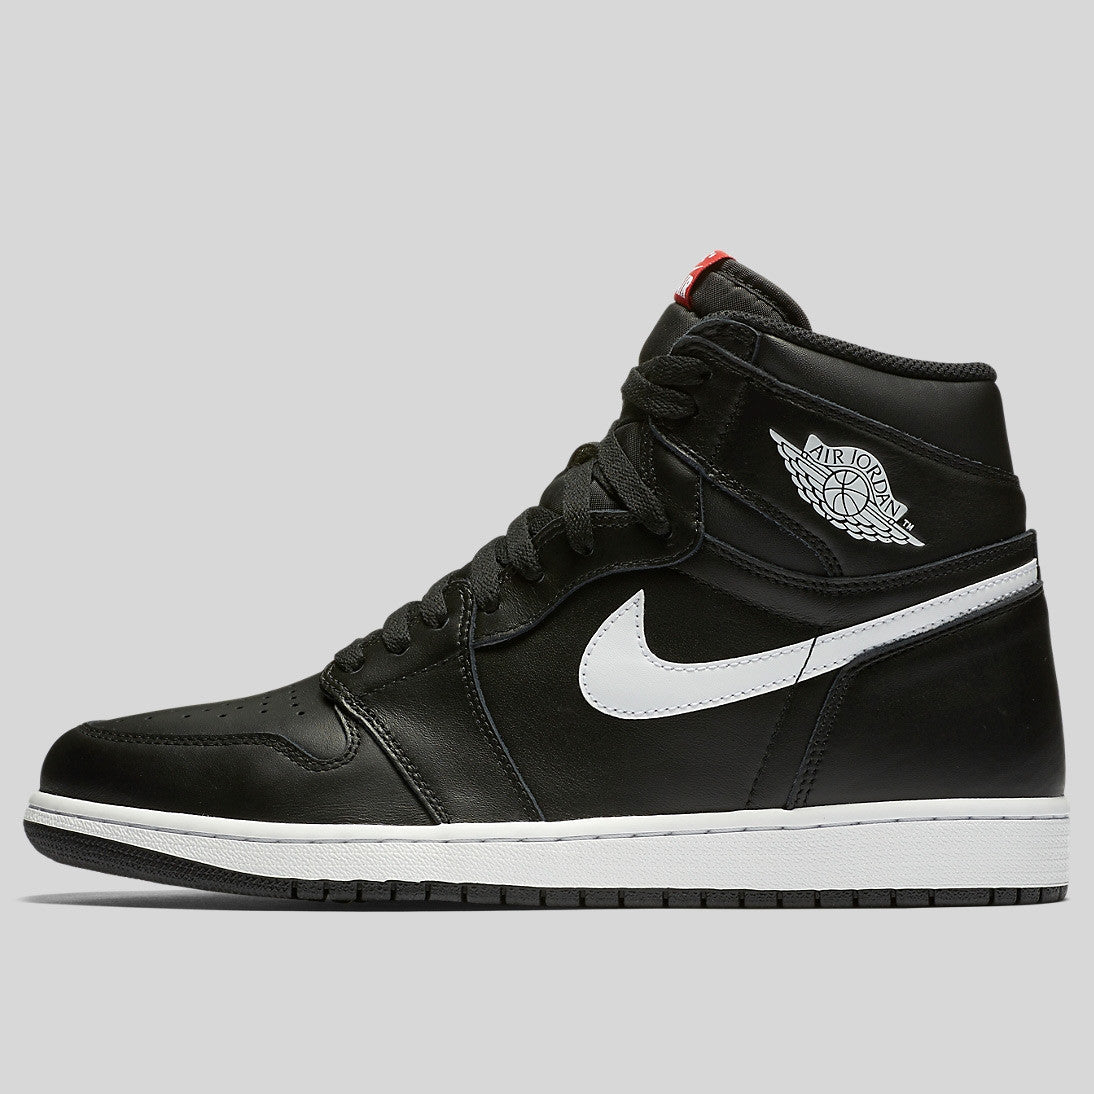 93648555158da2 Nike Air Jordan 1 Retro High OG Yin Yang Black (555088-011)